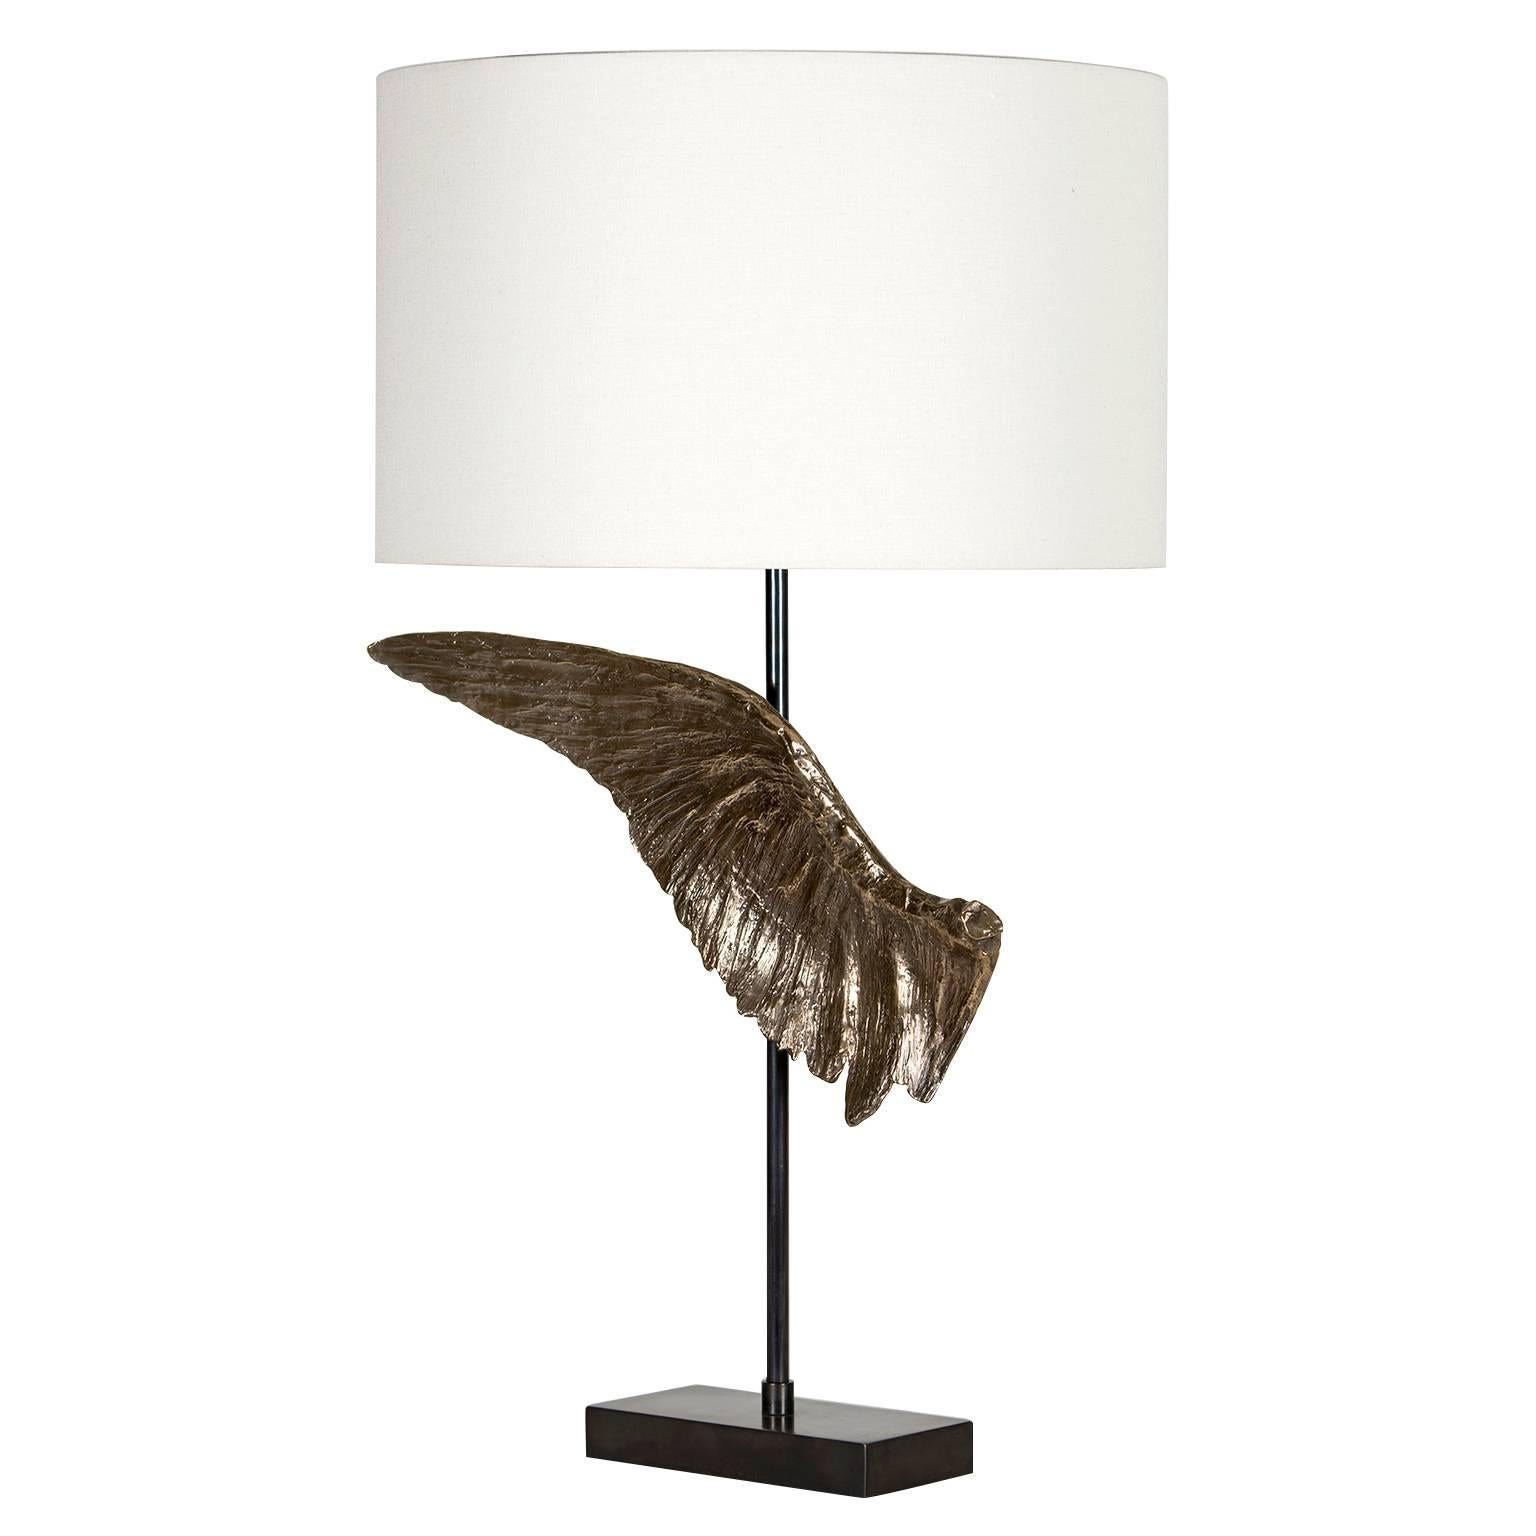 'Voltaire' Sculptural Cast Bronze Wing Table Lamp by Vivian Carbonell